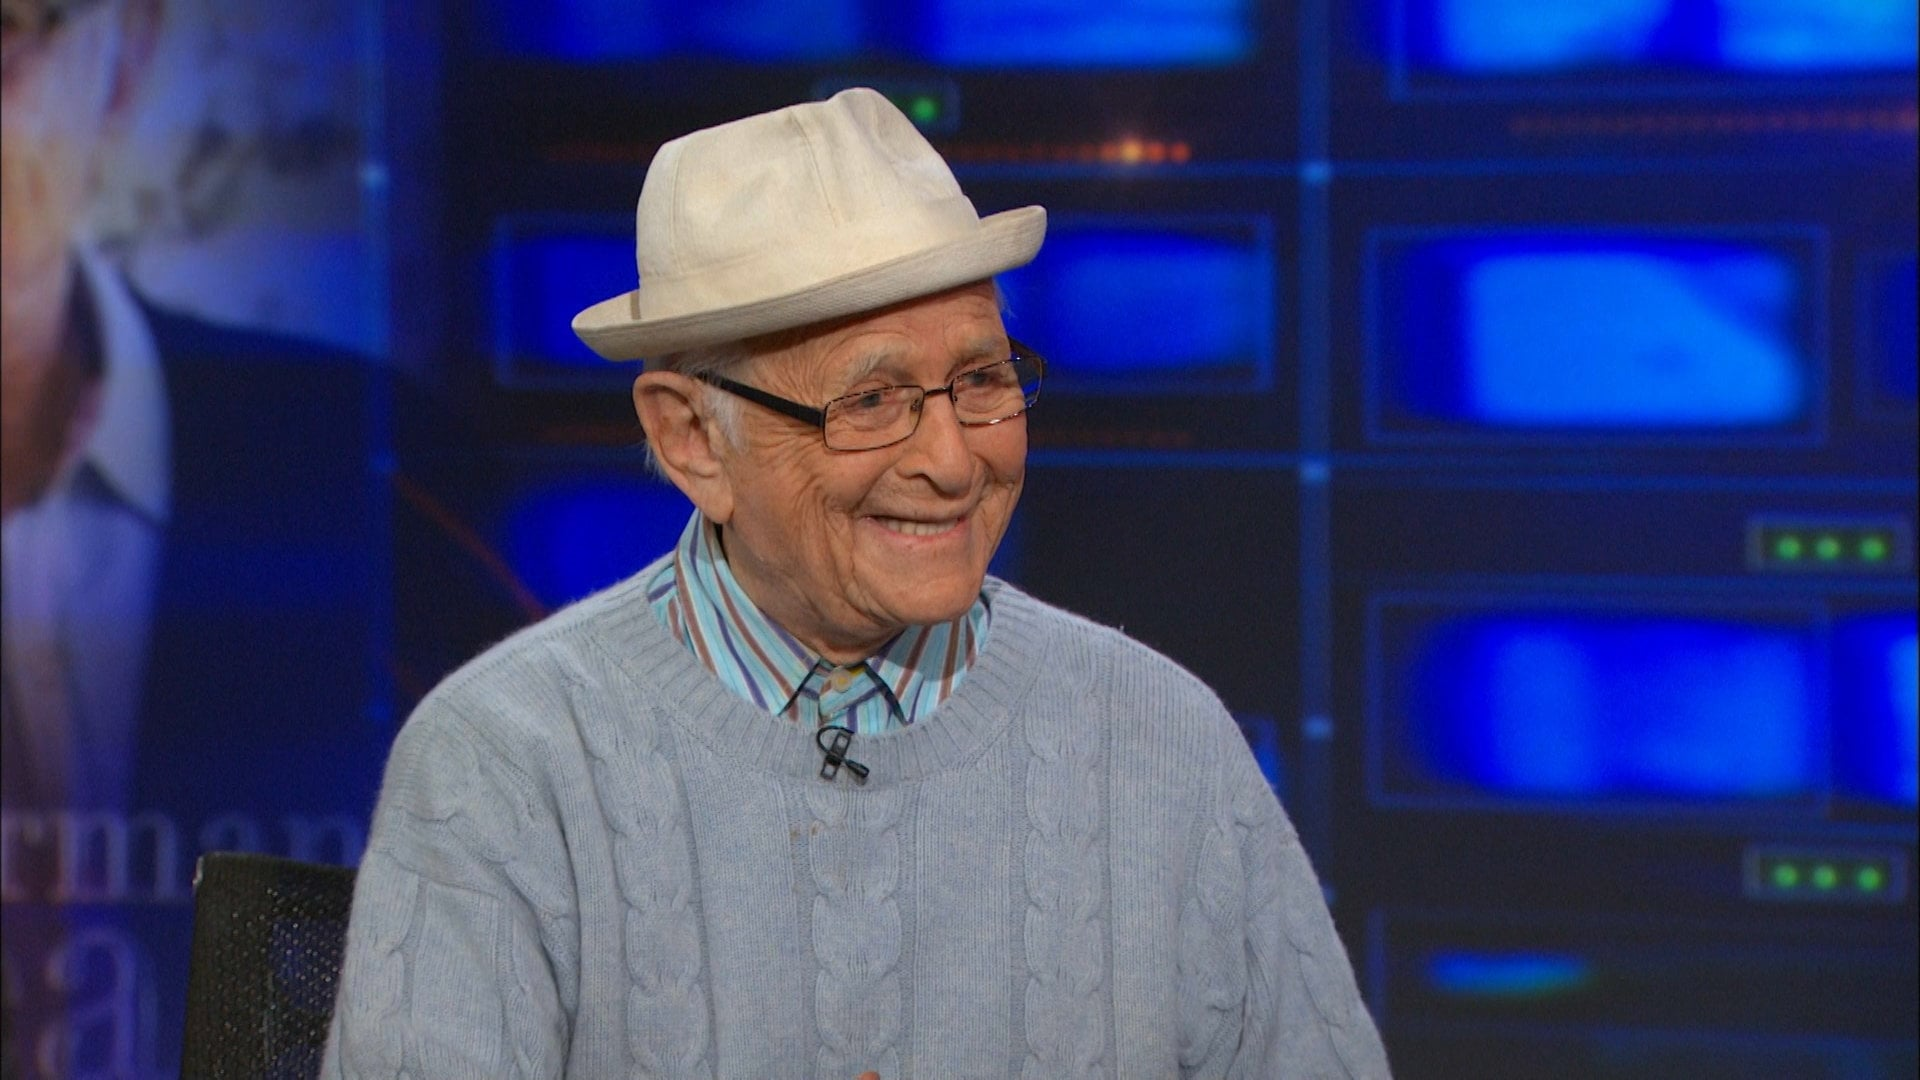 The Daily Show with Trevor Noah - Season 20 Episode 33 : Norman Lear (1970)